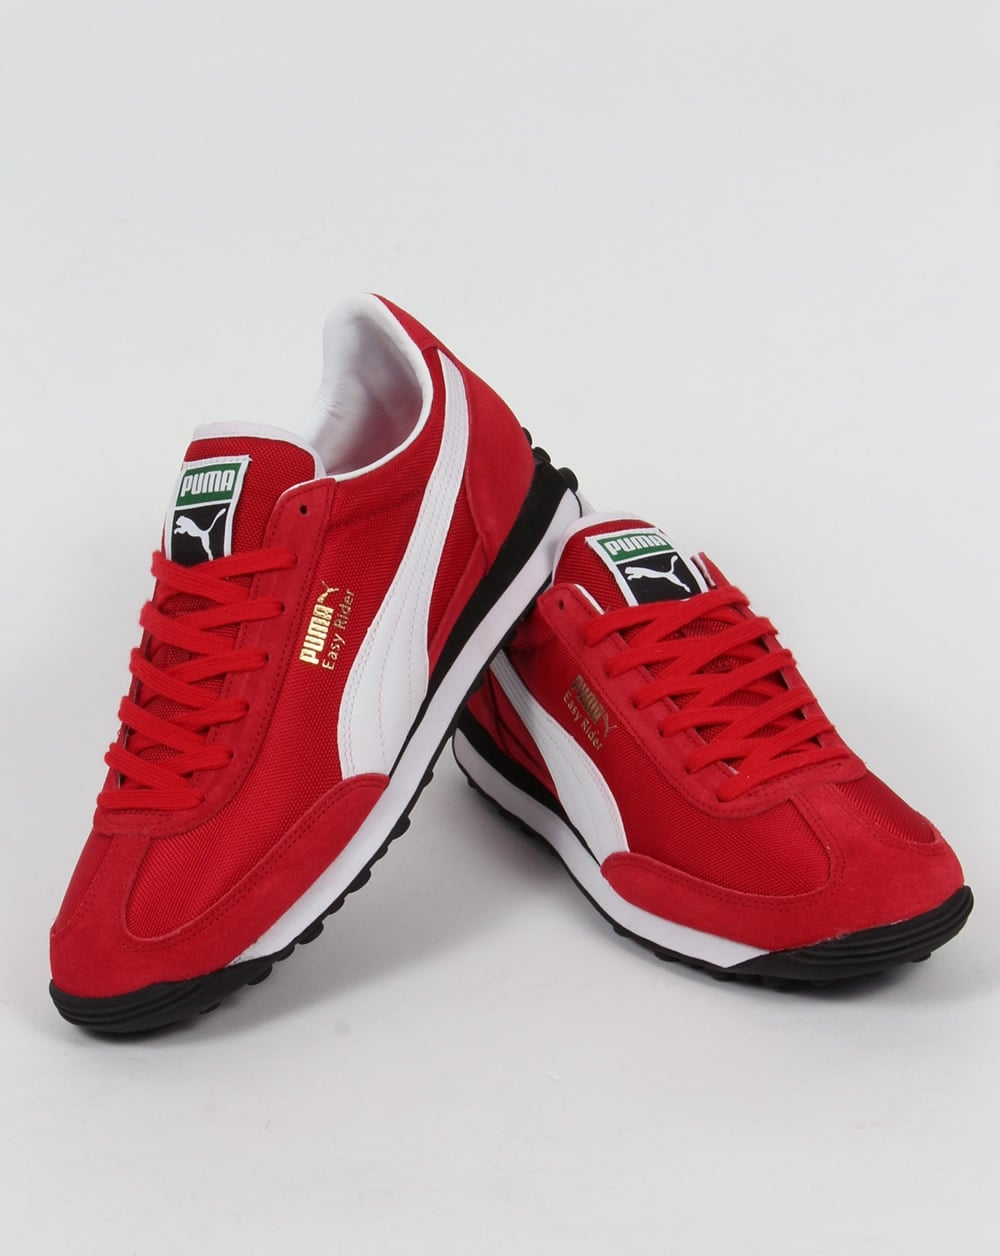 Puma Easy Rider Trainers Red,retro,cherry,classic,mens